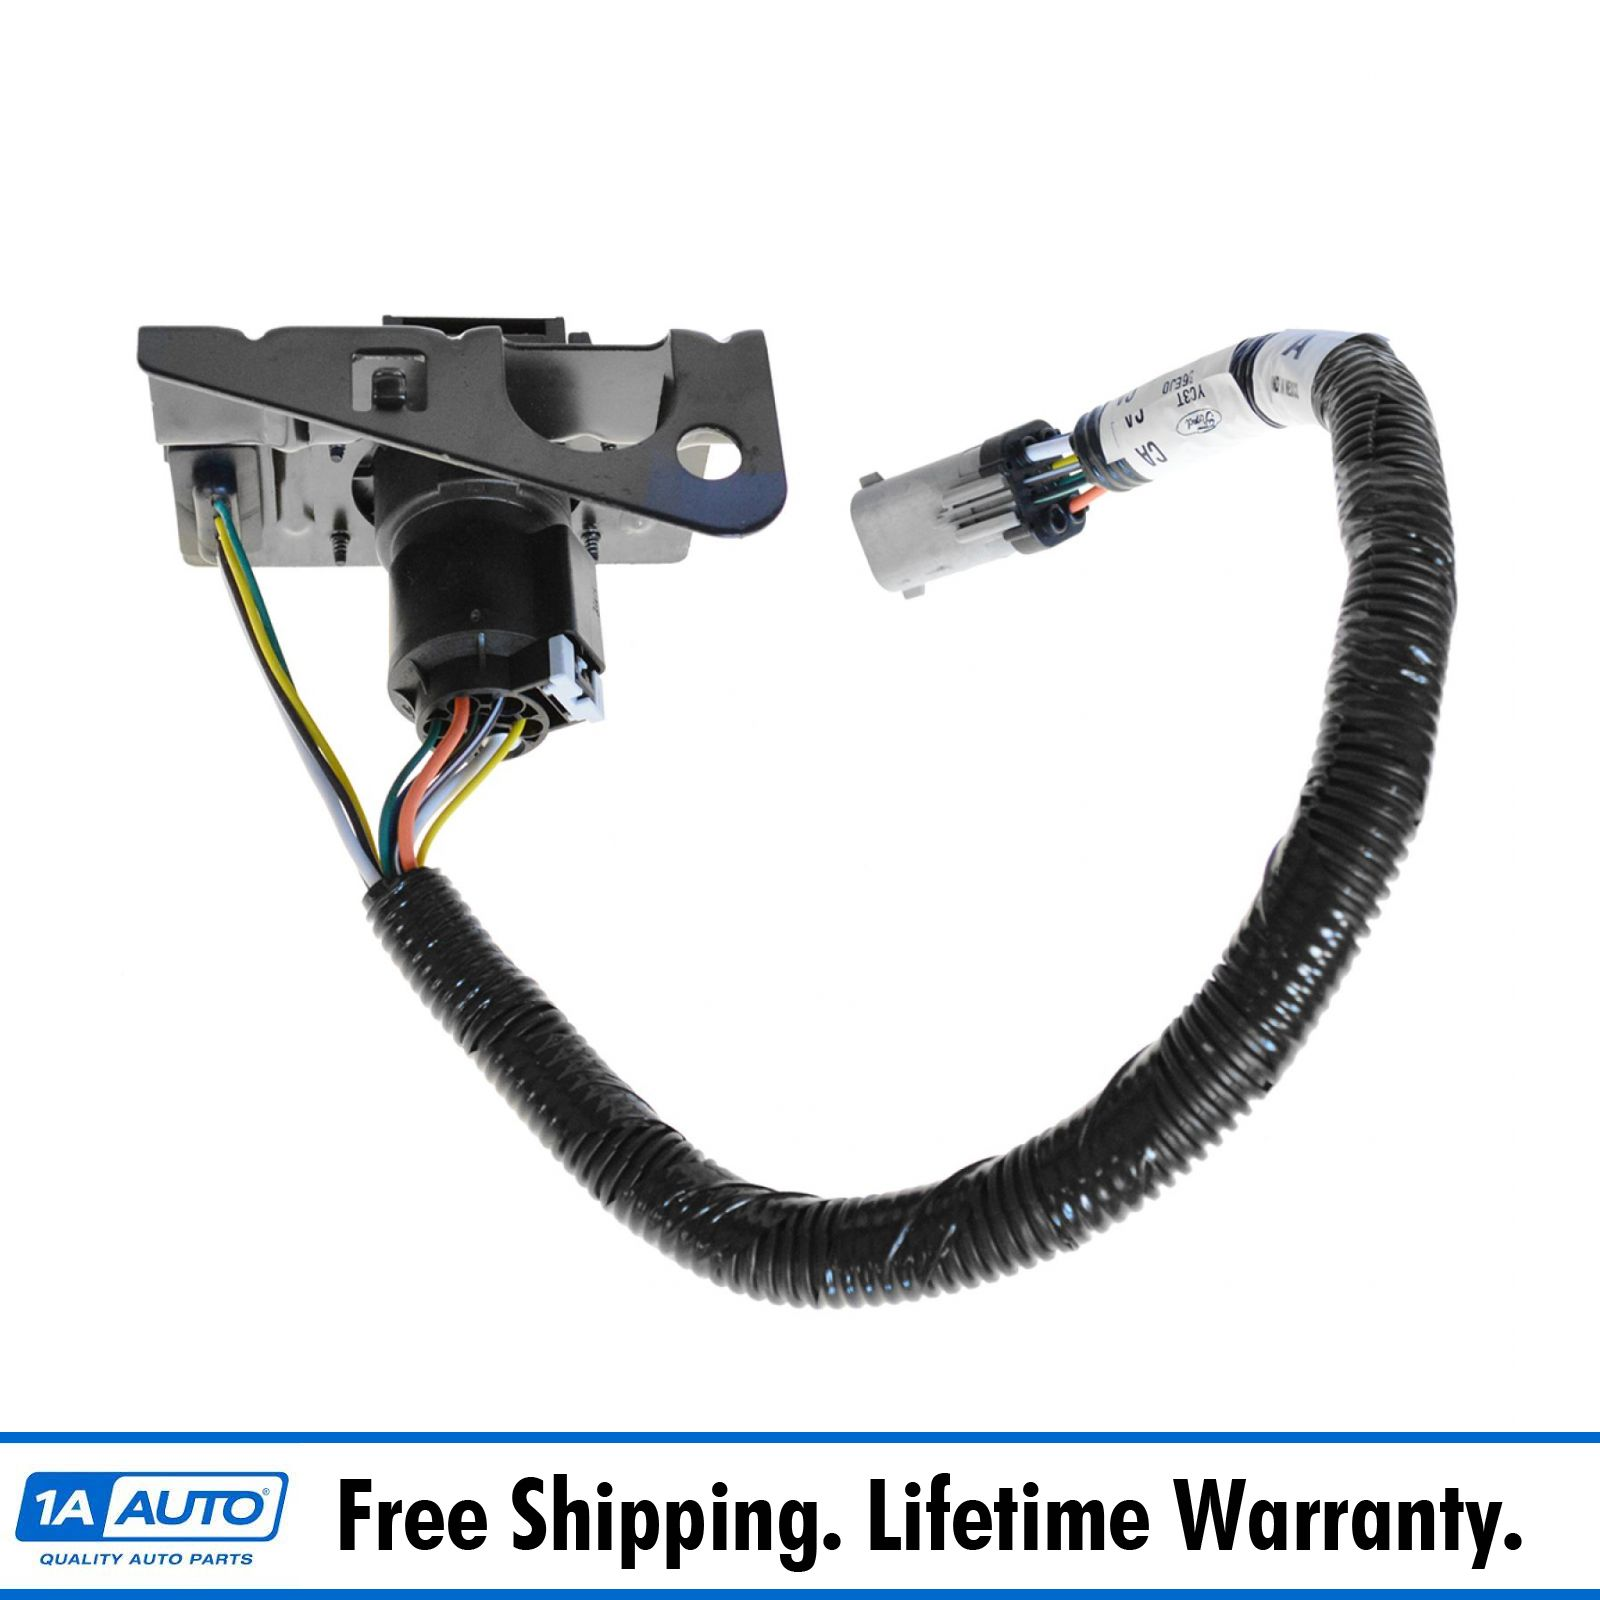 hight resolution of details about ford 4 7 pin trailer tow wiring harness w plug bracket for f250 f350 f450 sd